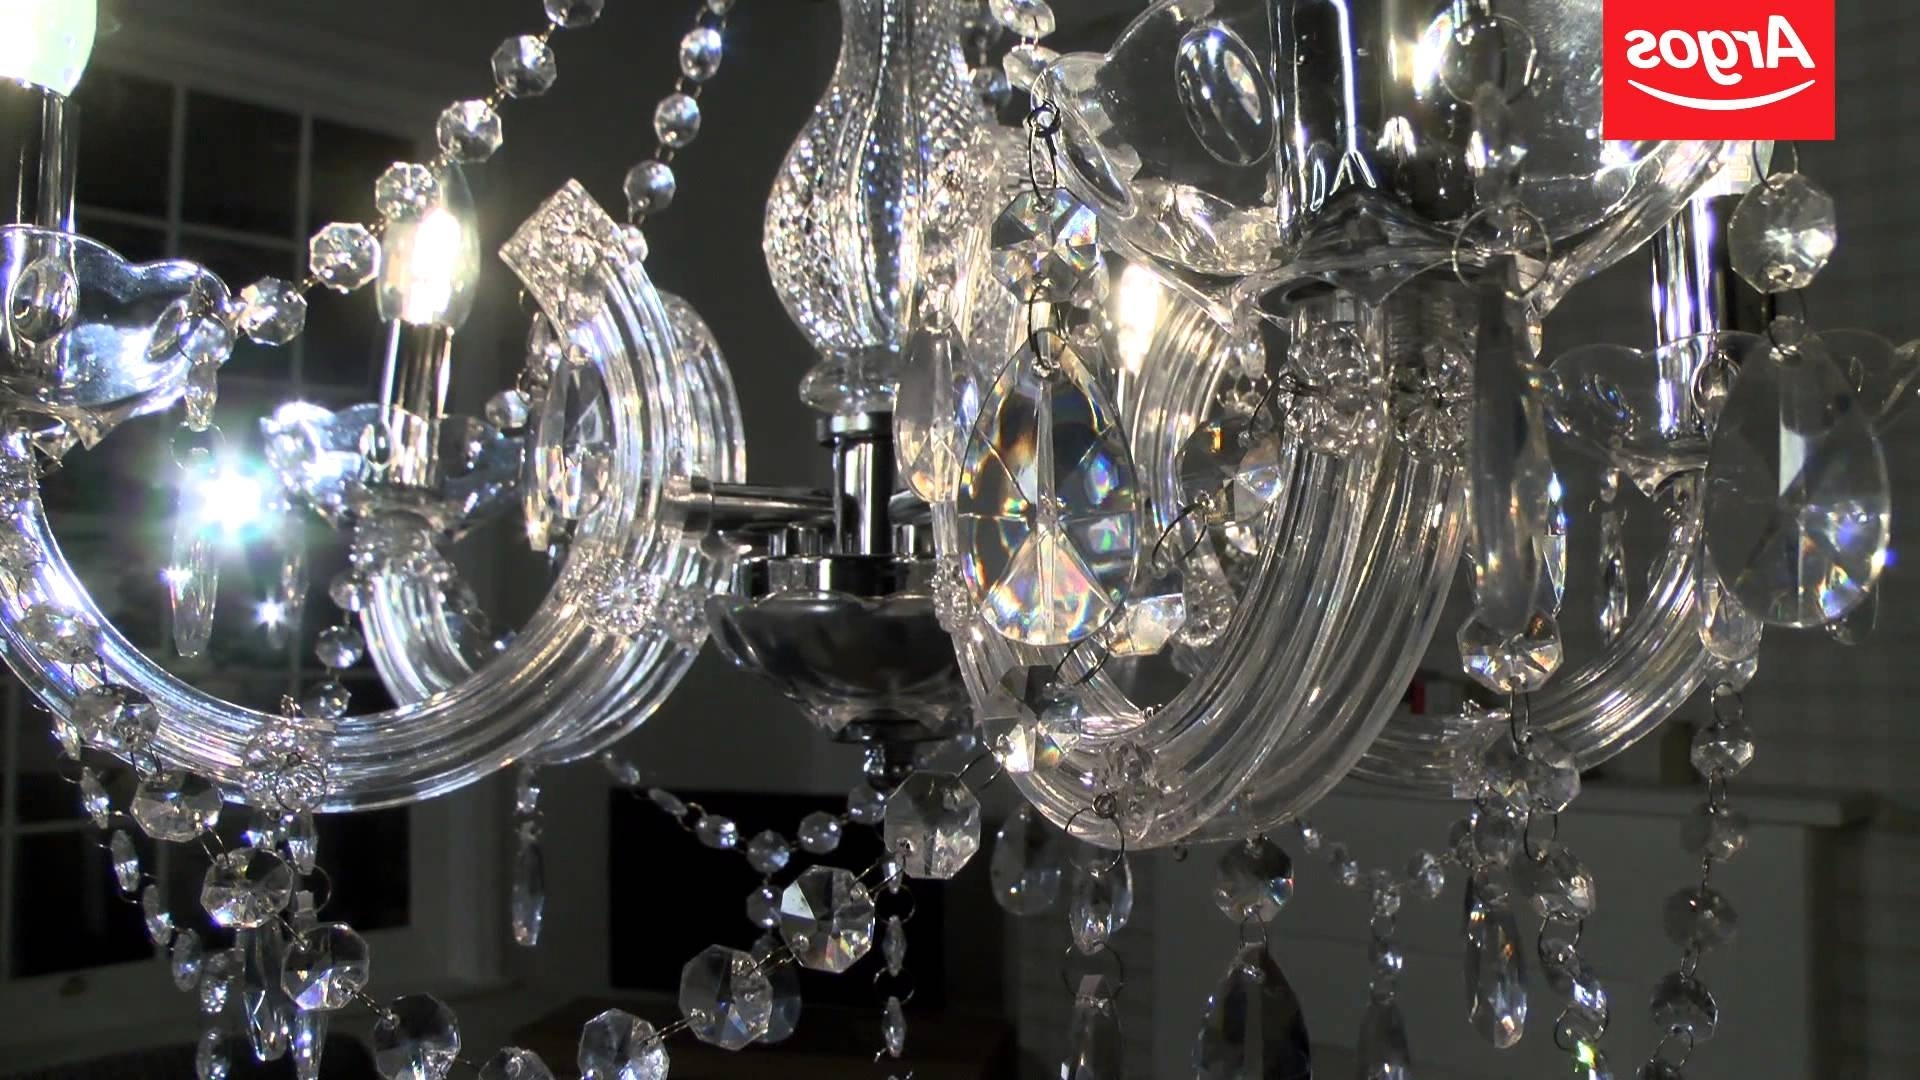 Buy Inspire Chandelier 5 Light Ceiling Fitting – Youtube Within Best And Newest Light Fitting Chandeliers (View 2 of 20)